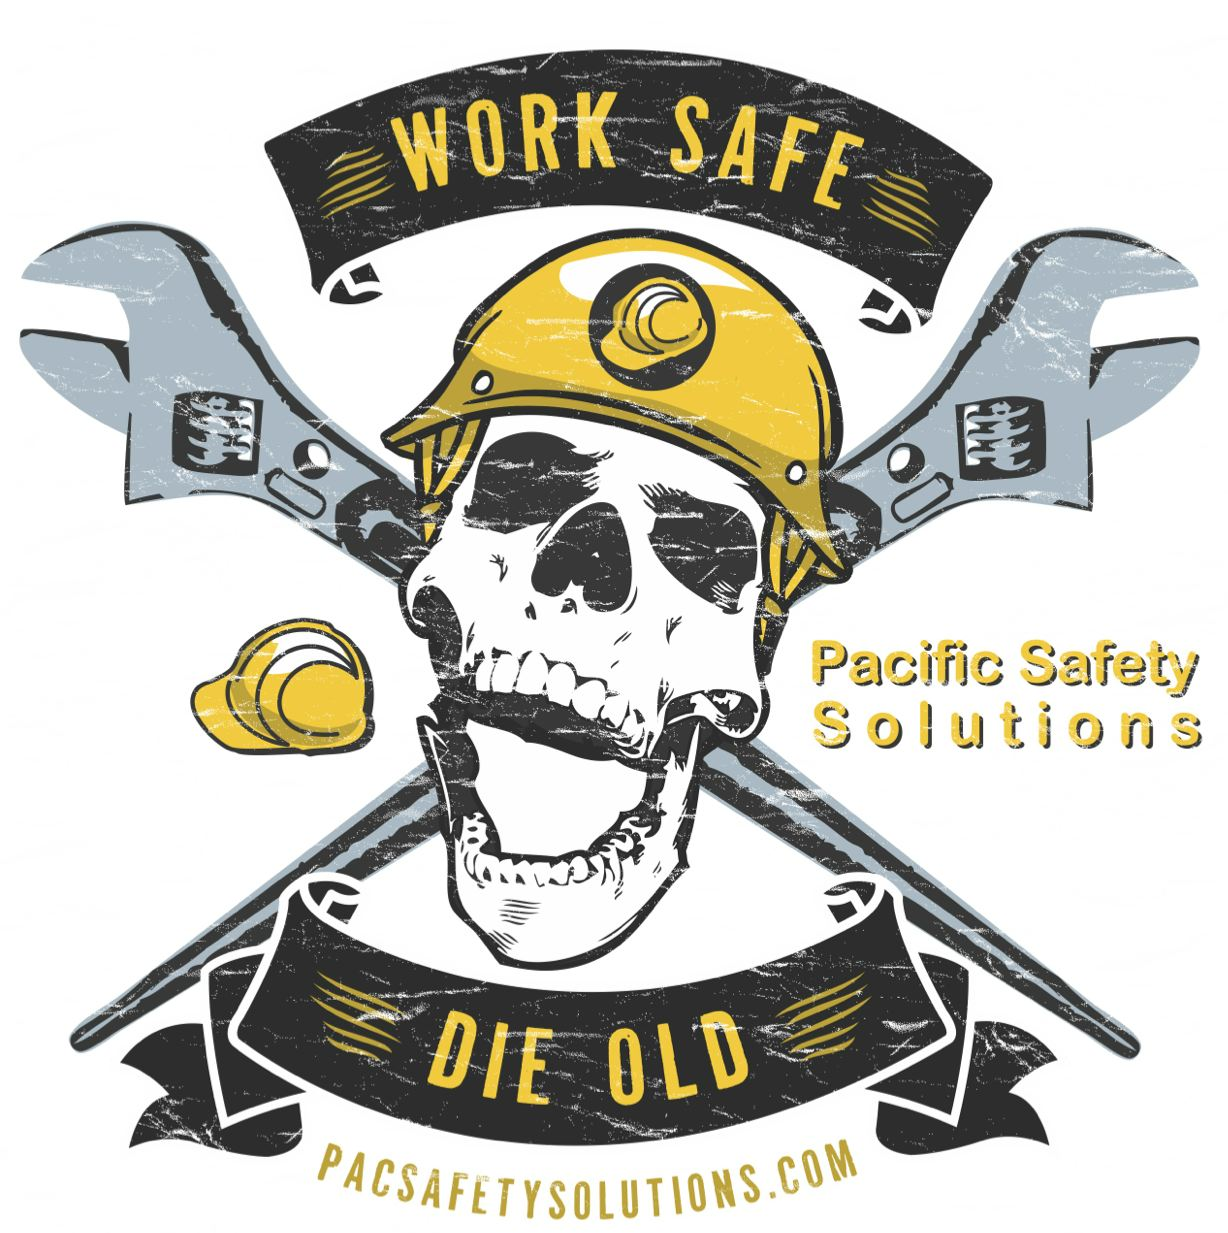 Pac Safety